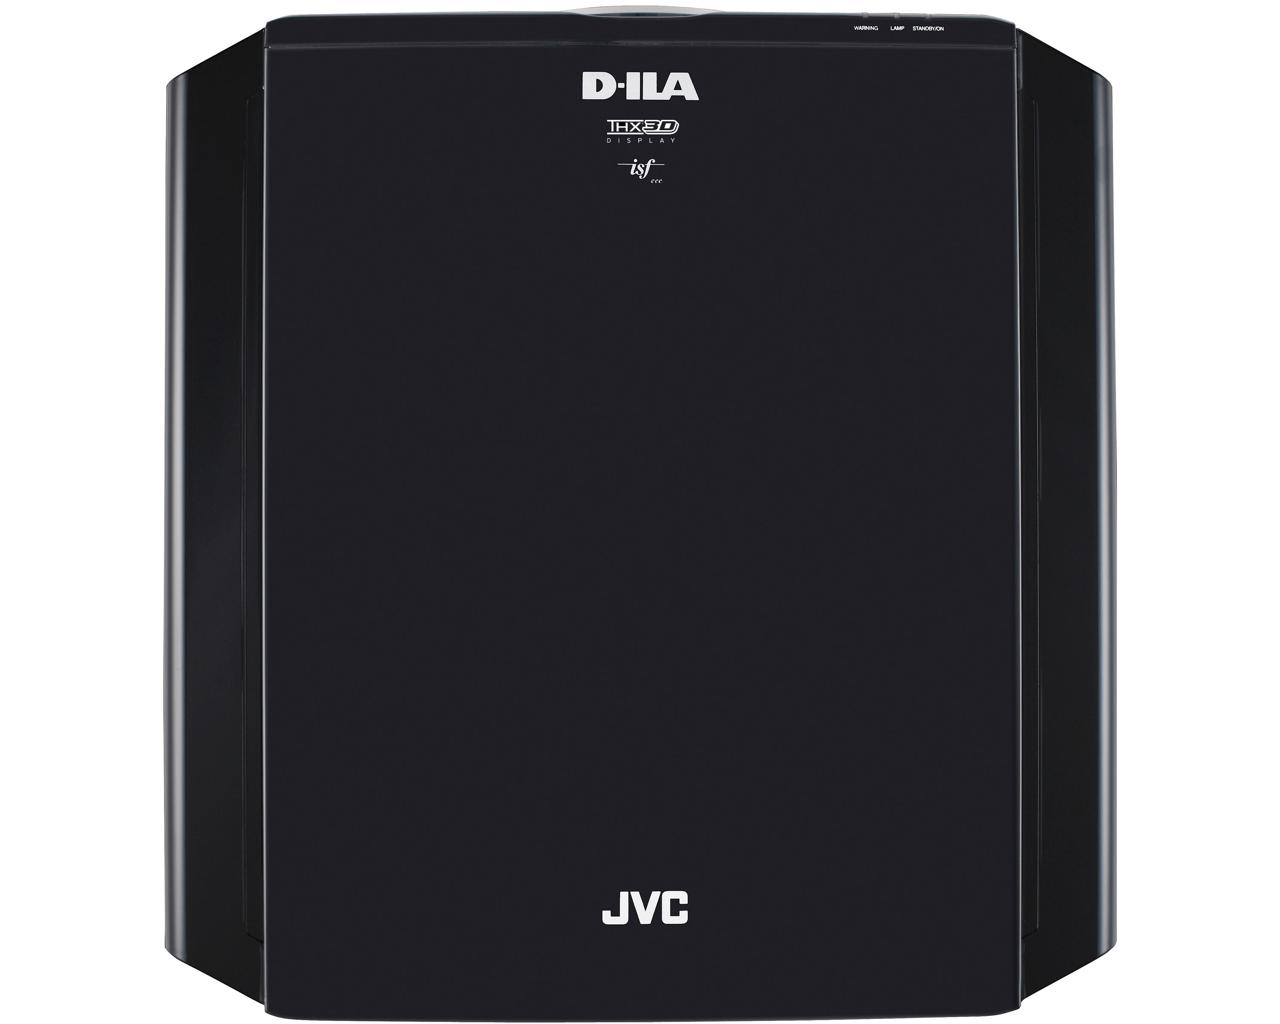 The Jvc Dla X7900 1900 Lumens 4k Uhd Projector In Stock